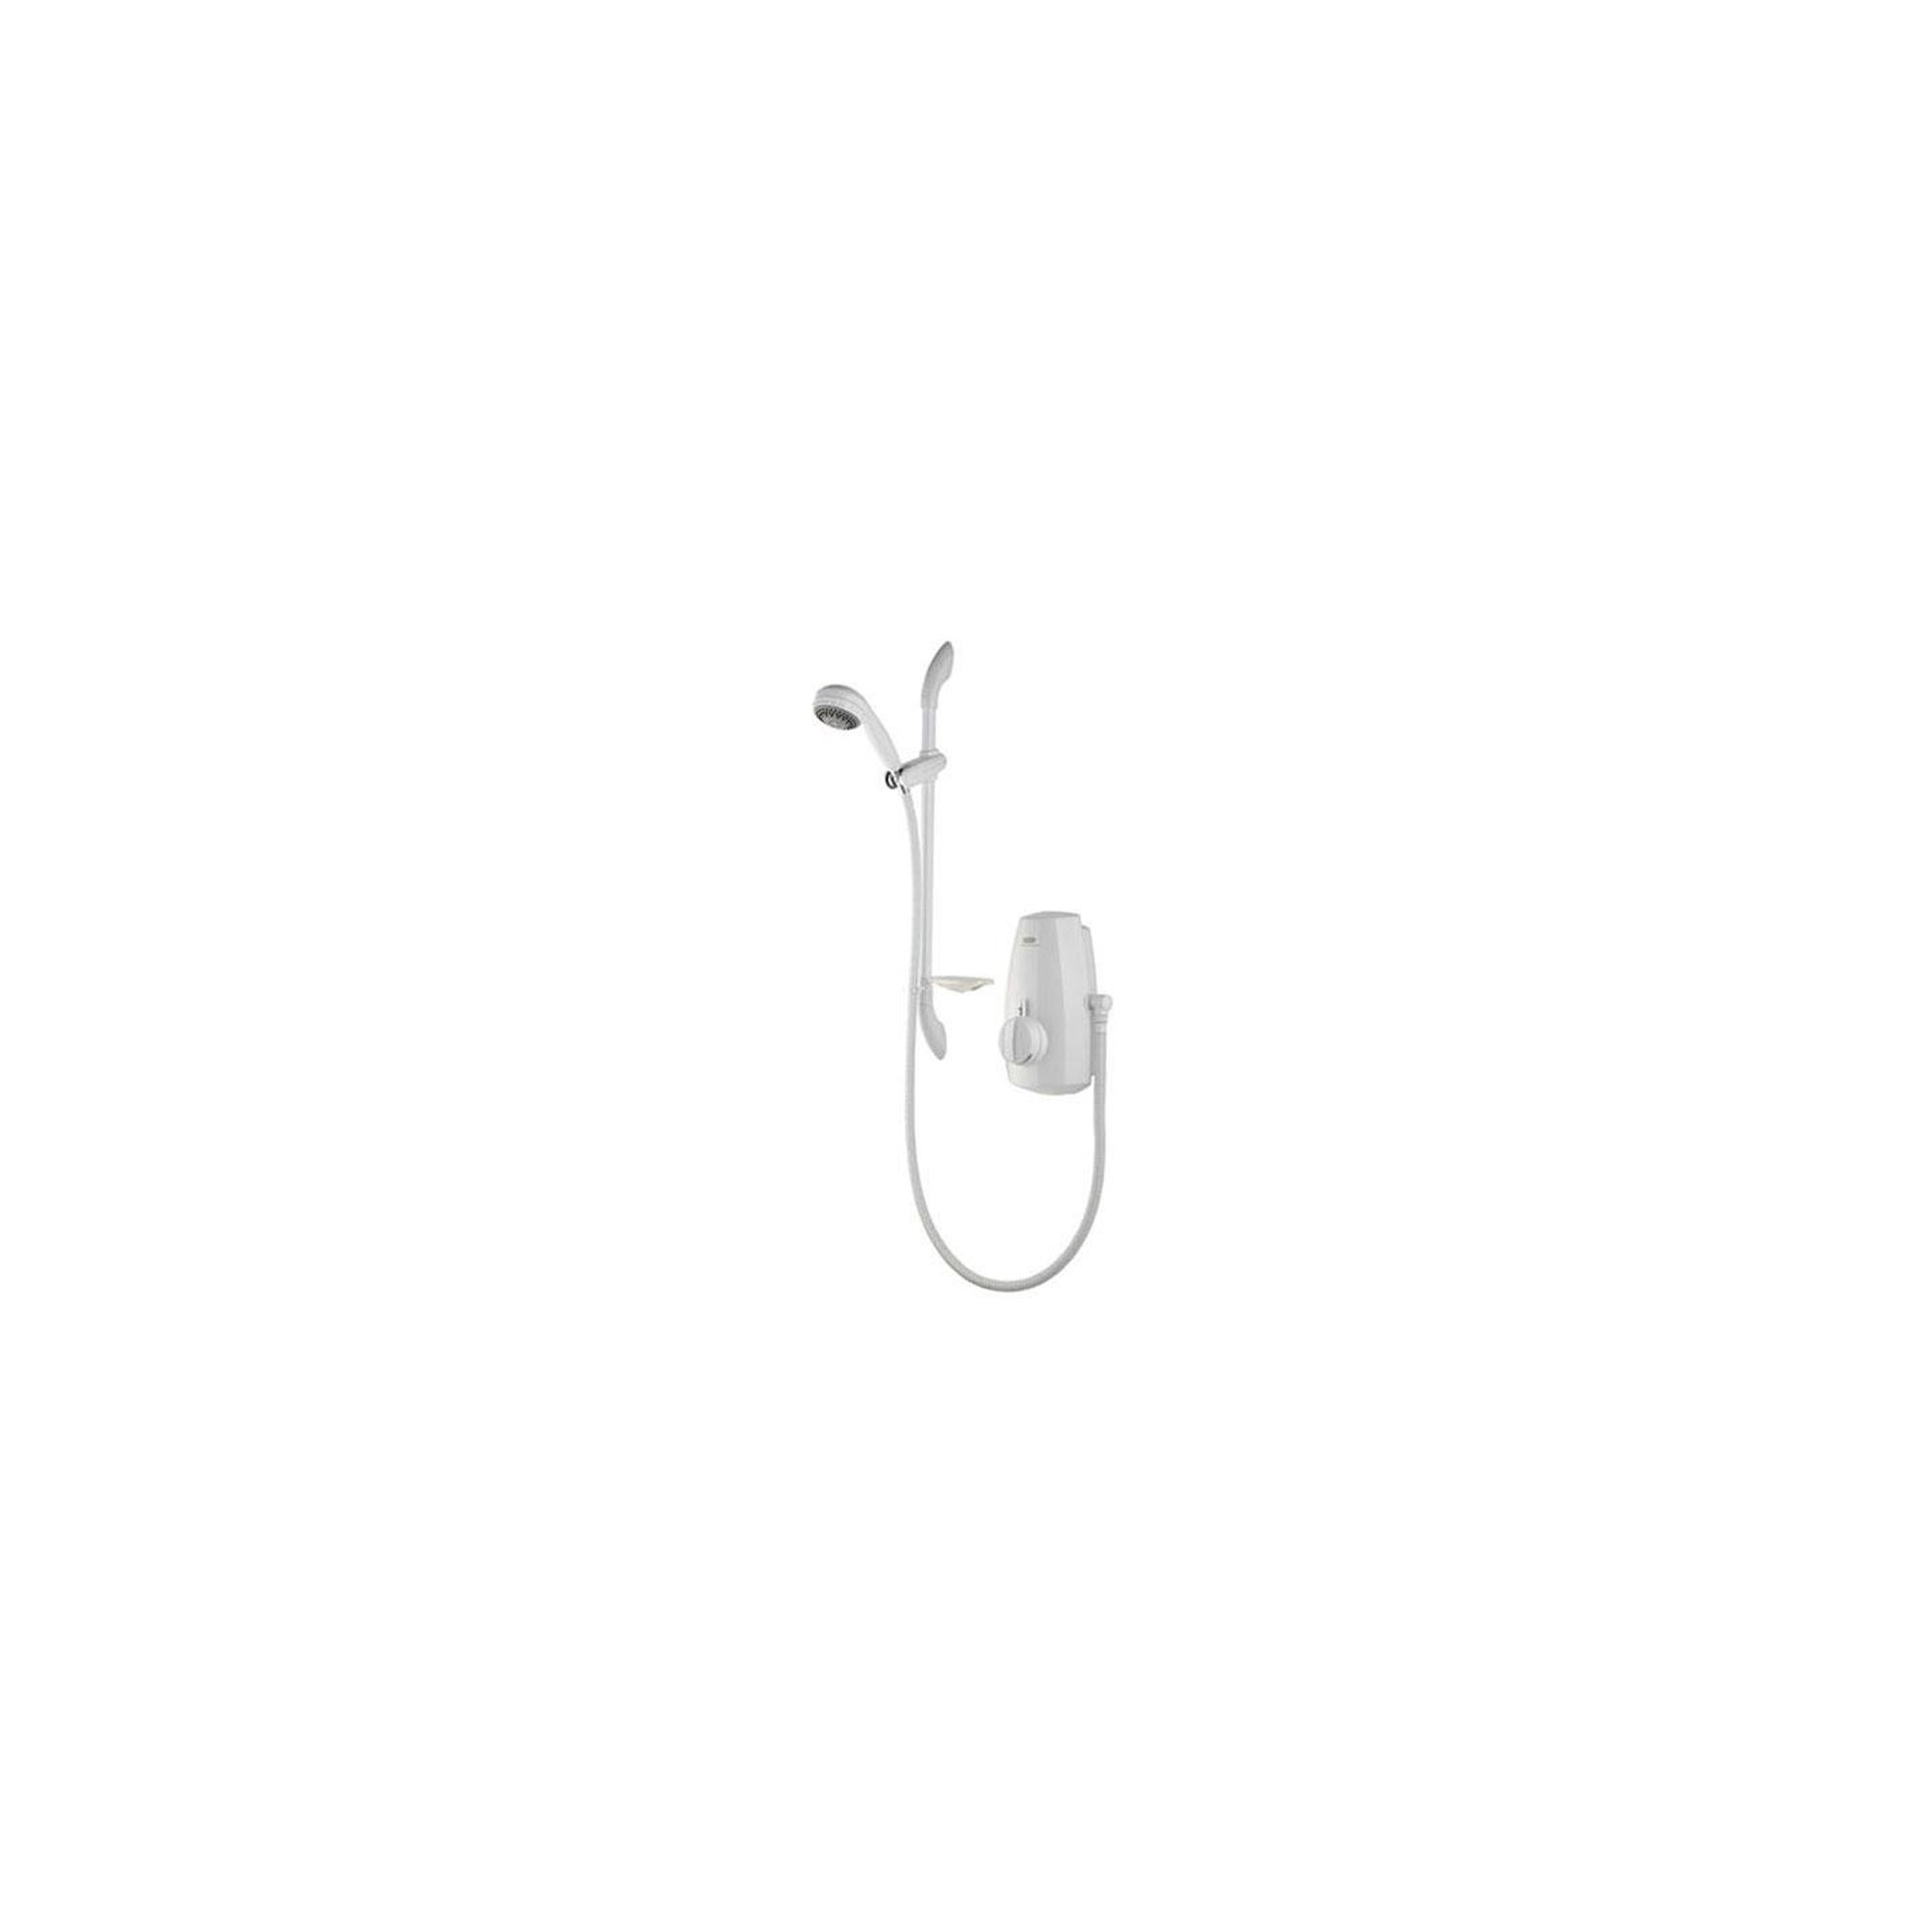 Aqualisa Aquastream Thermo Power Shower with Adjustable Head White at Tesco Direct